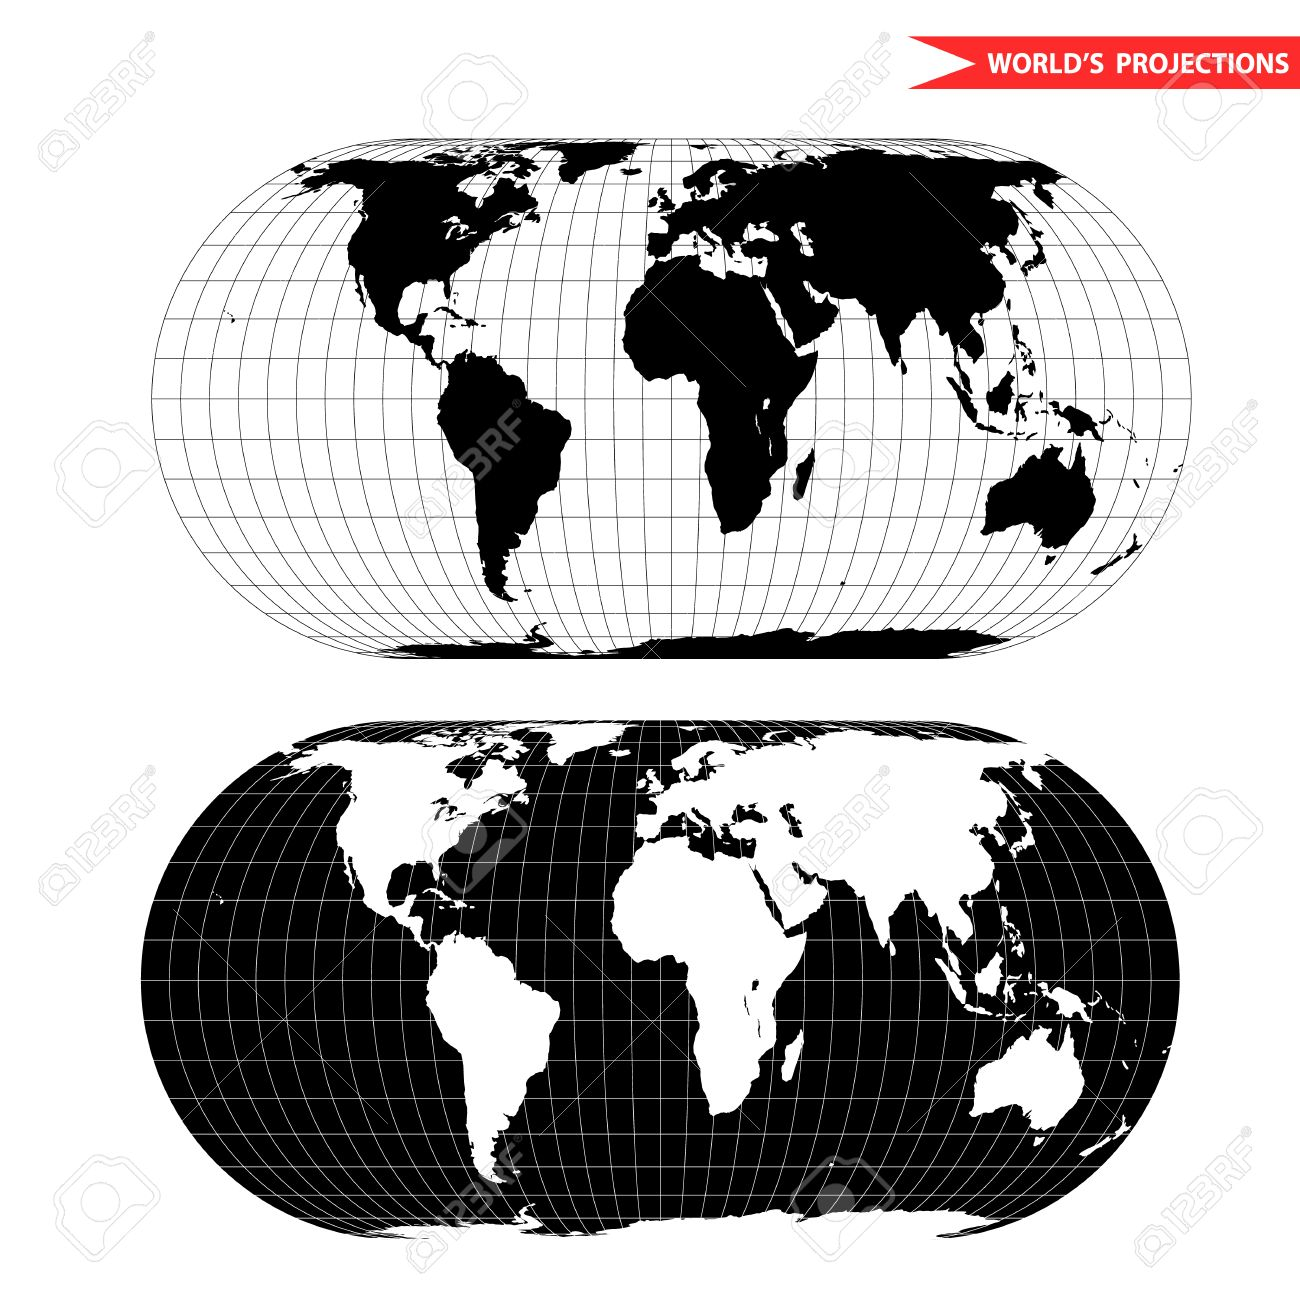 Becker world map projection black and white world map illustration becker world map projection black and white world map illustration stock vector 56153133 gumiabroncs Images